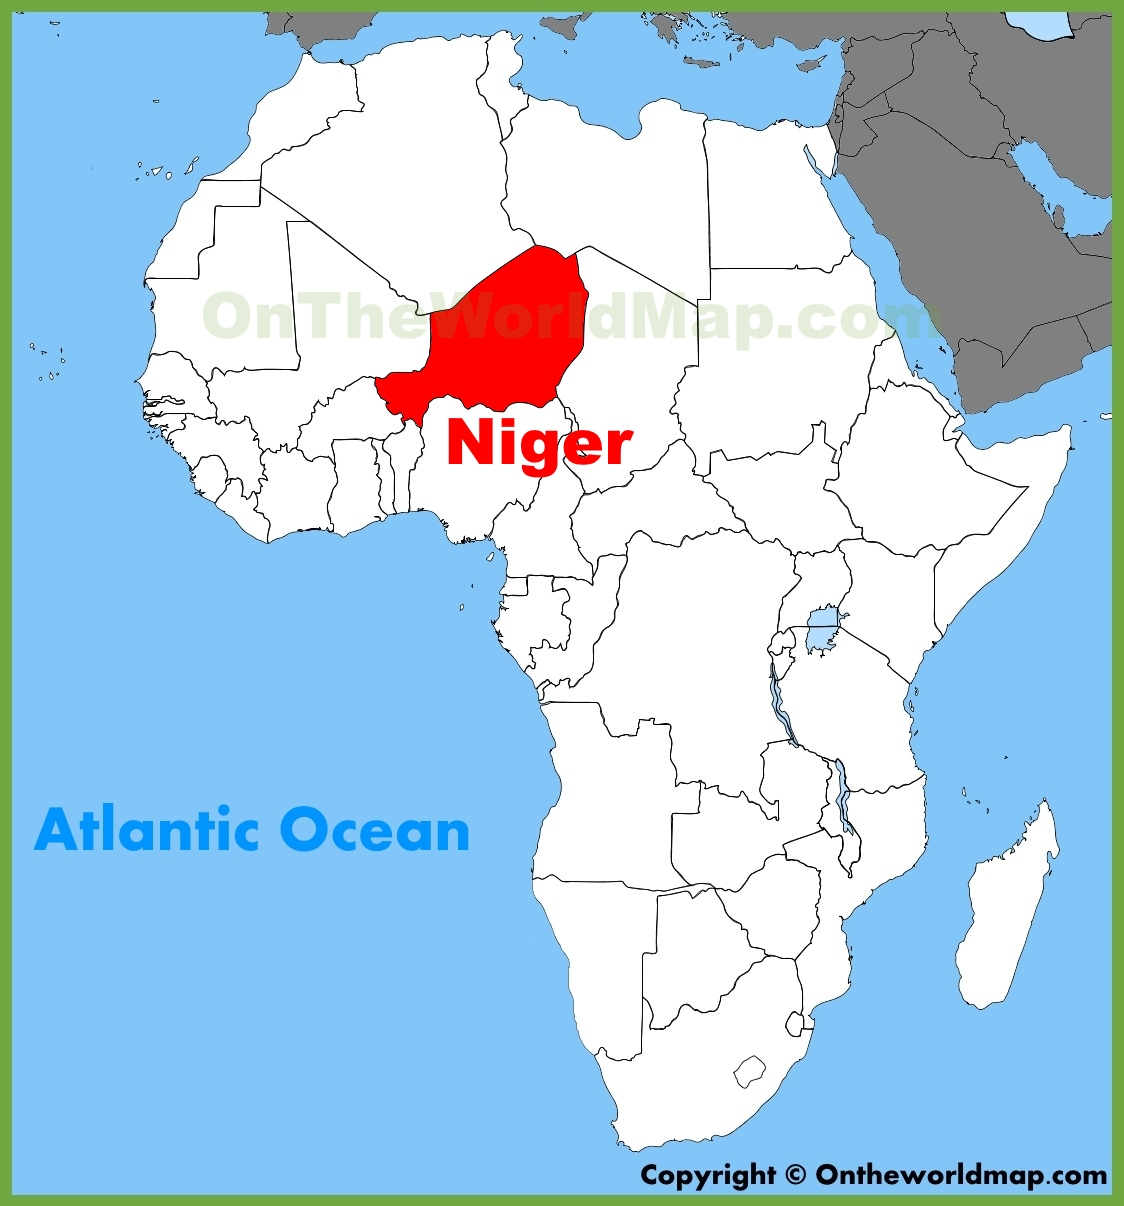 https://i1.wp.com/ontheworldmap.com/niger/niger-location-on-the-africa-map.jpg